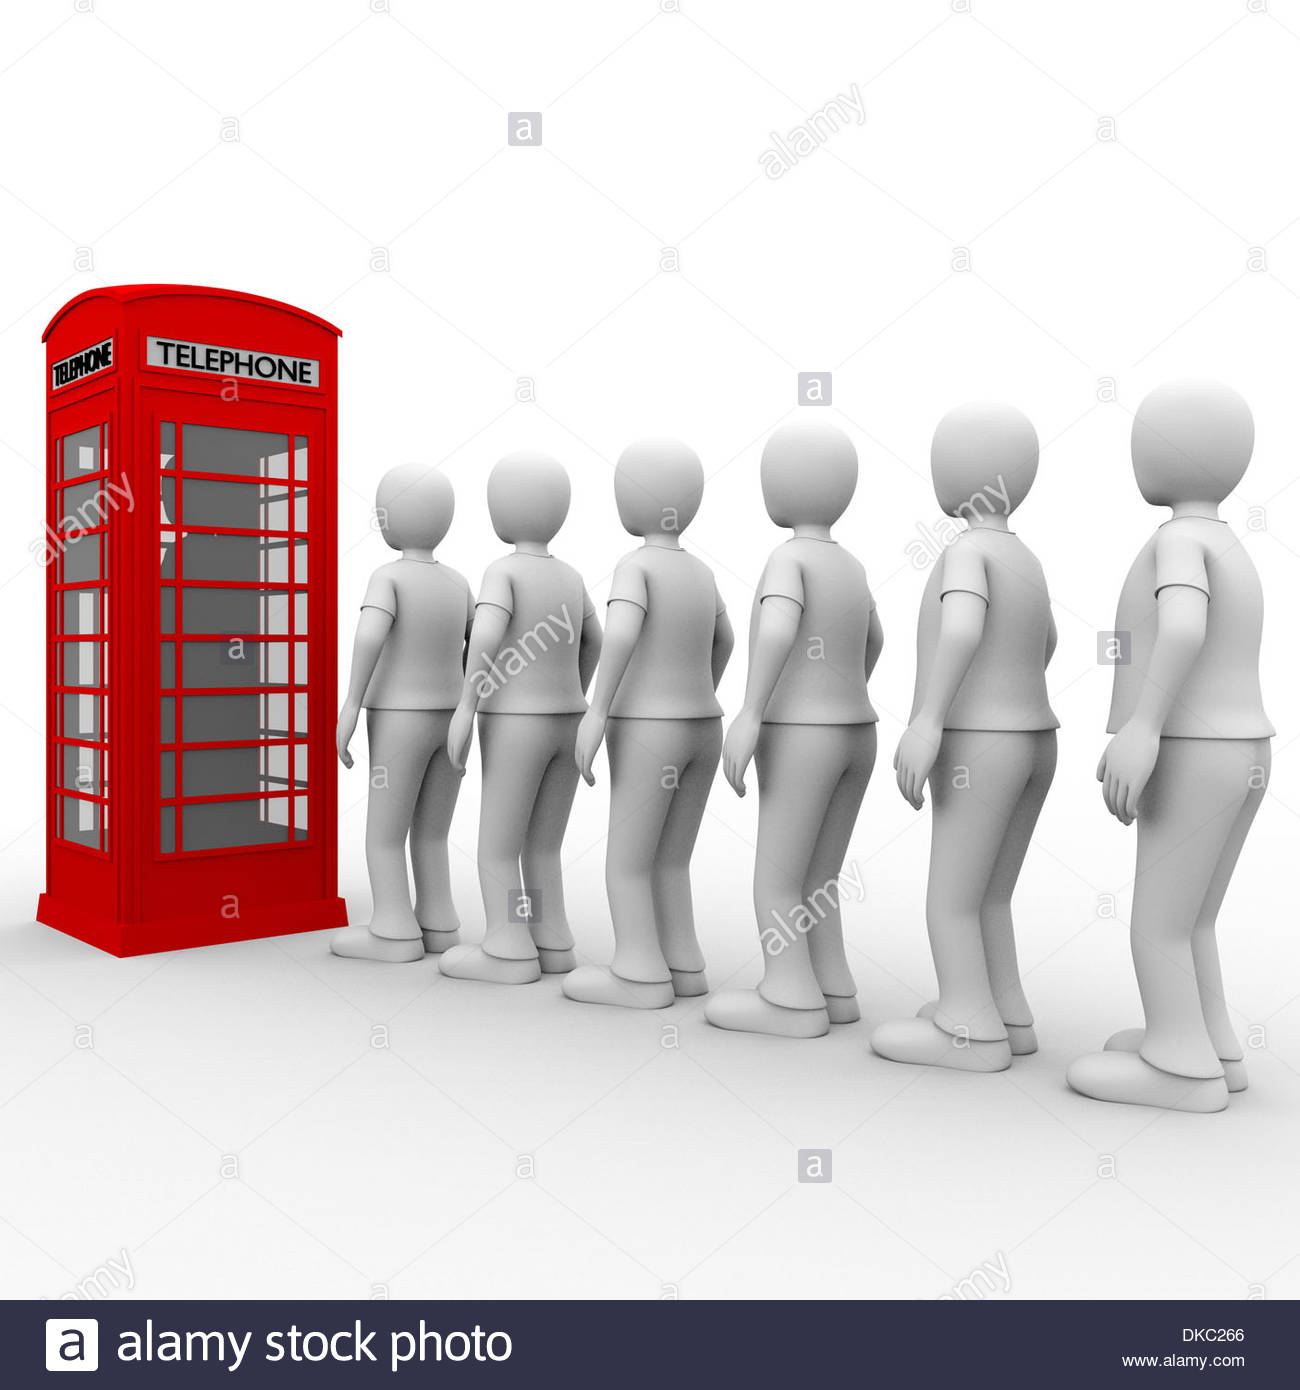 Some men in a queue for making a phone call - Stock Image